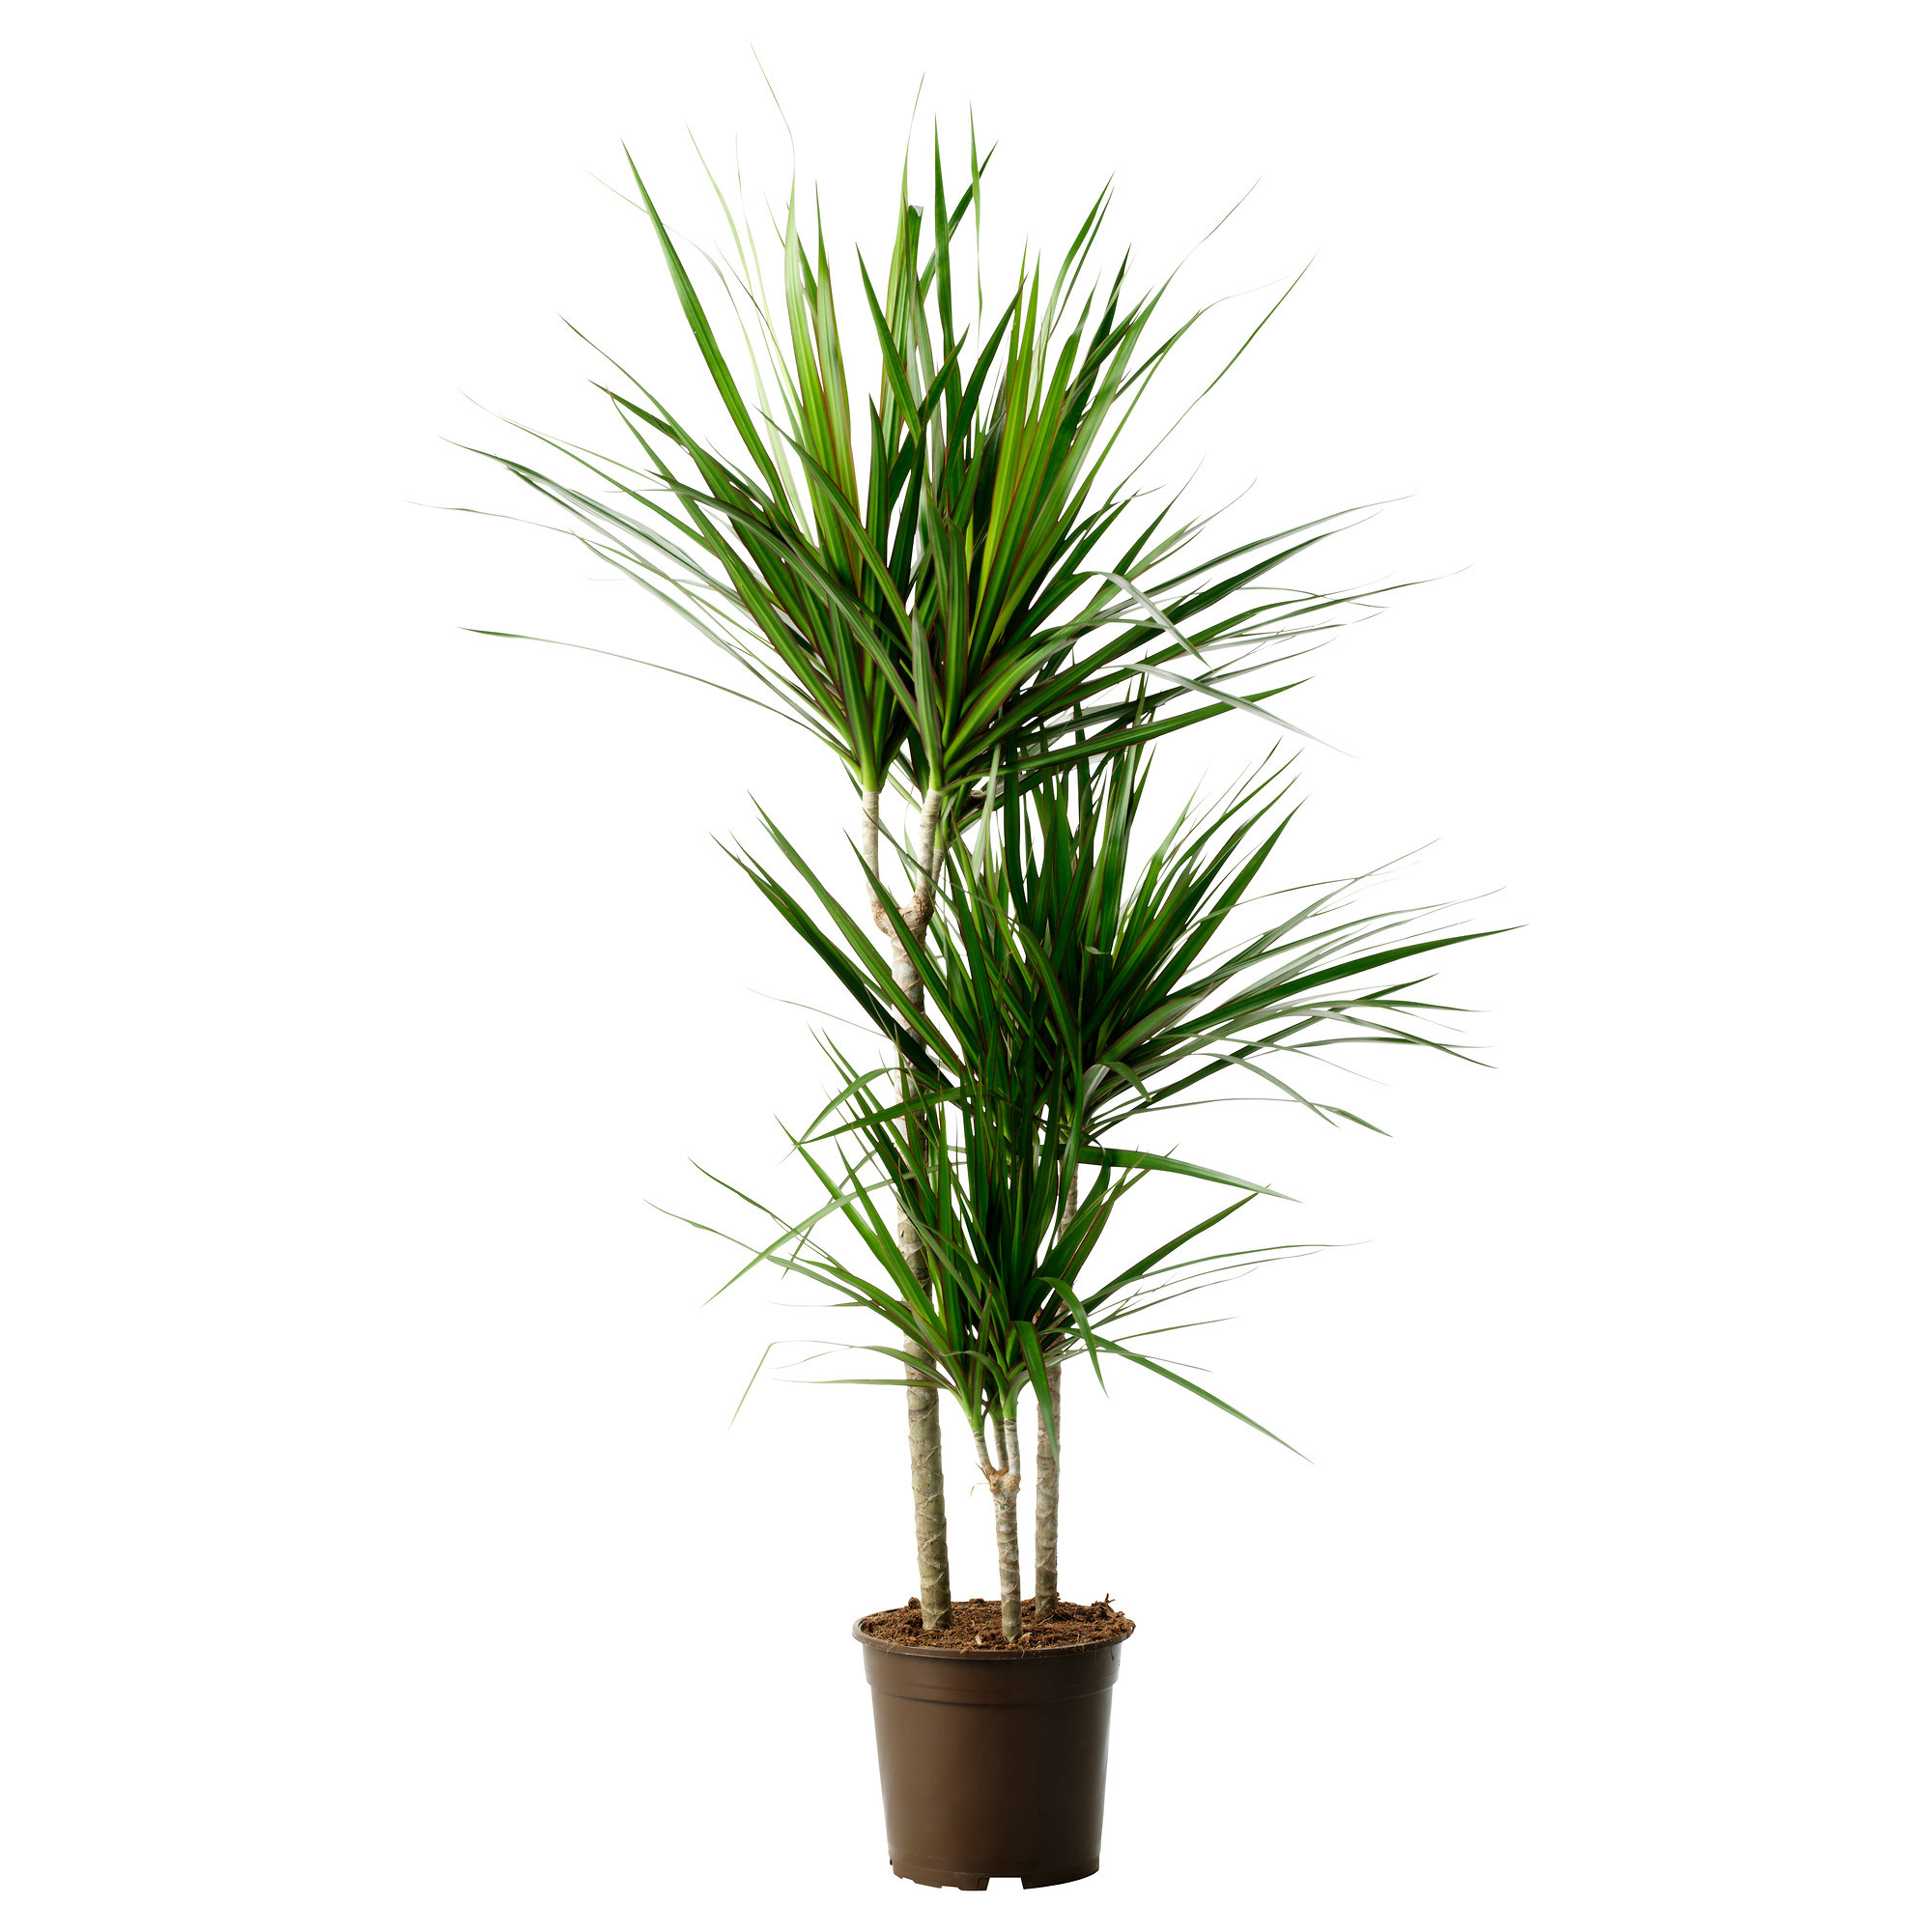 View Details   Buy Dracaena Marginata   Buy Plants for Bedroom   Browse  plants by Location. Top 6 plants for Bedrooms to help you sleep better   Top 10 Plants